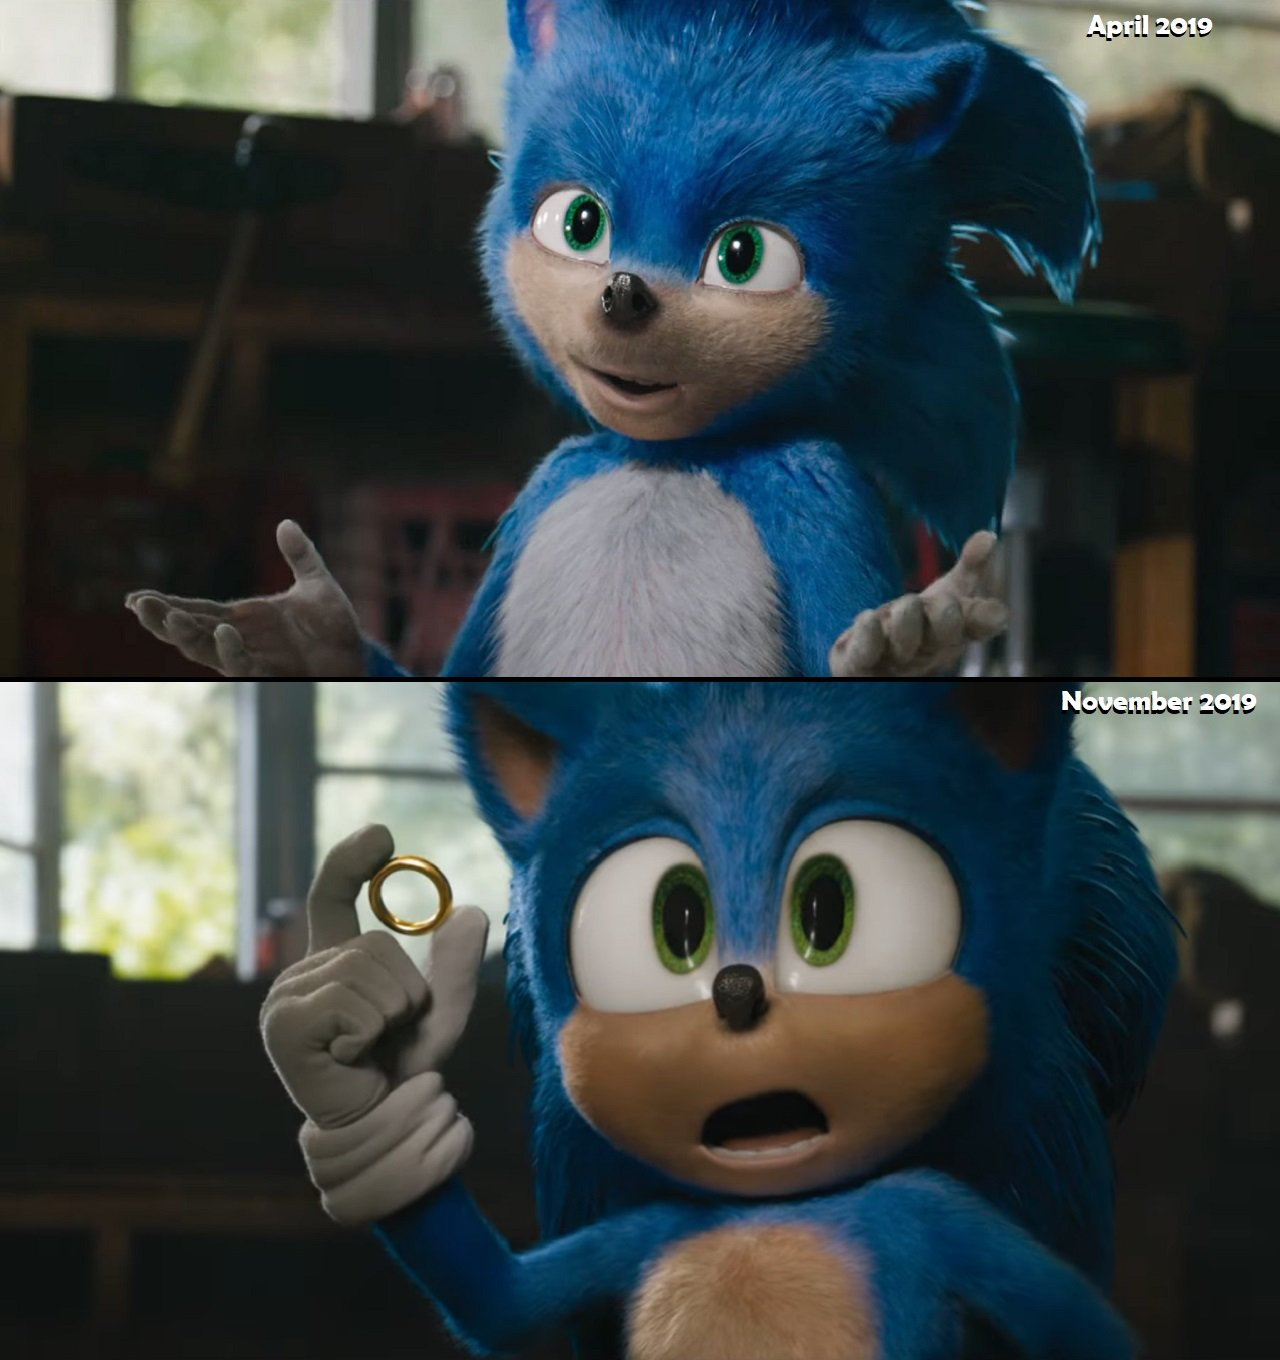 New Sonic The Hedgehog Movie Trailer Doesn T Look That Bad Shacknews